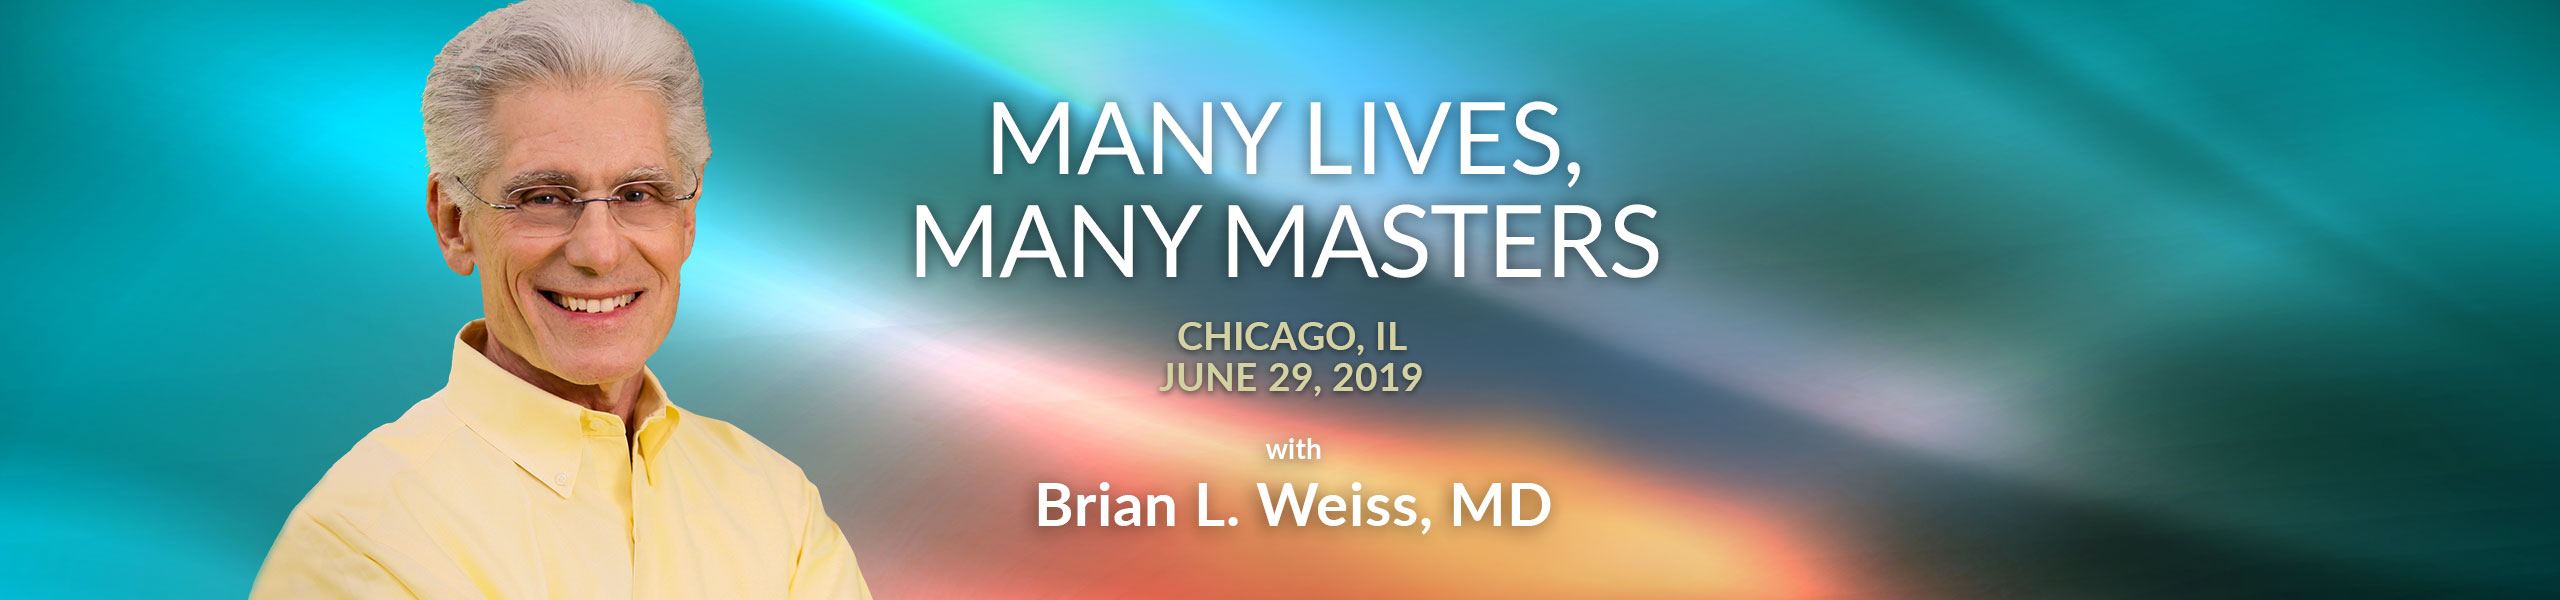 Many Lives, Many Masters - Chicago